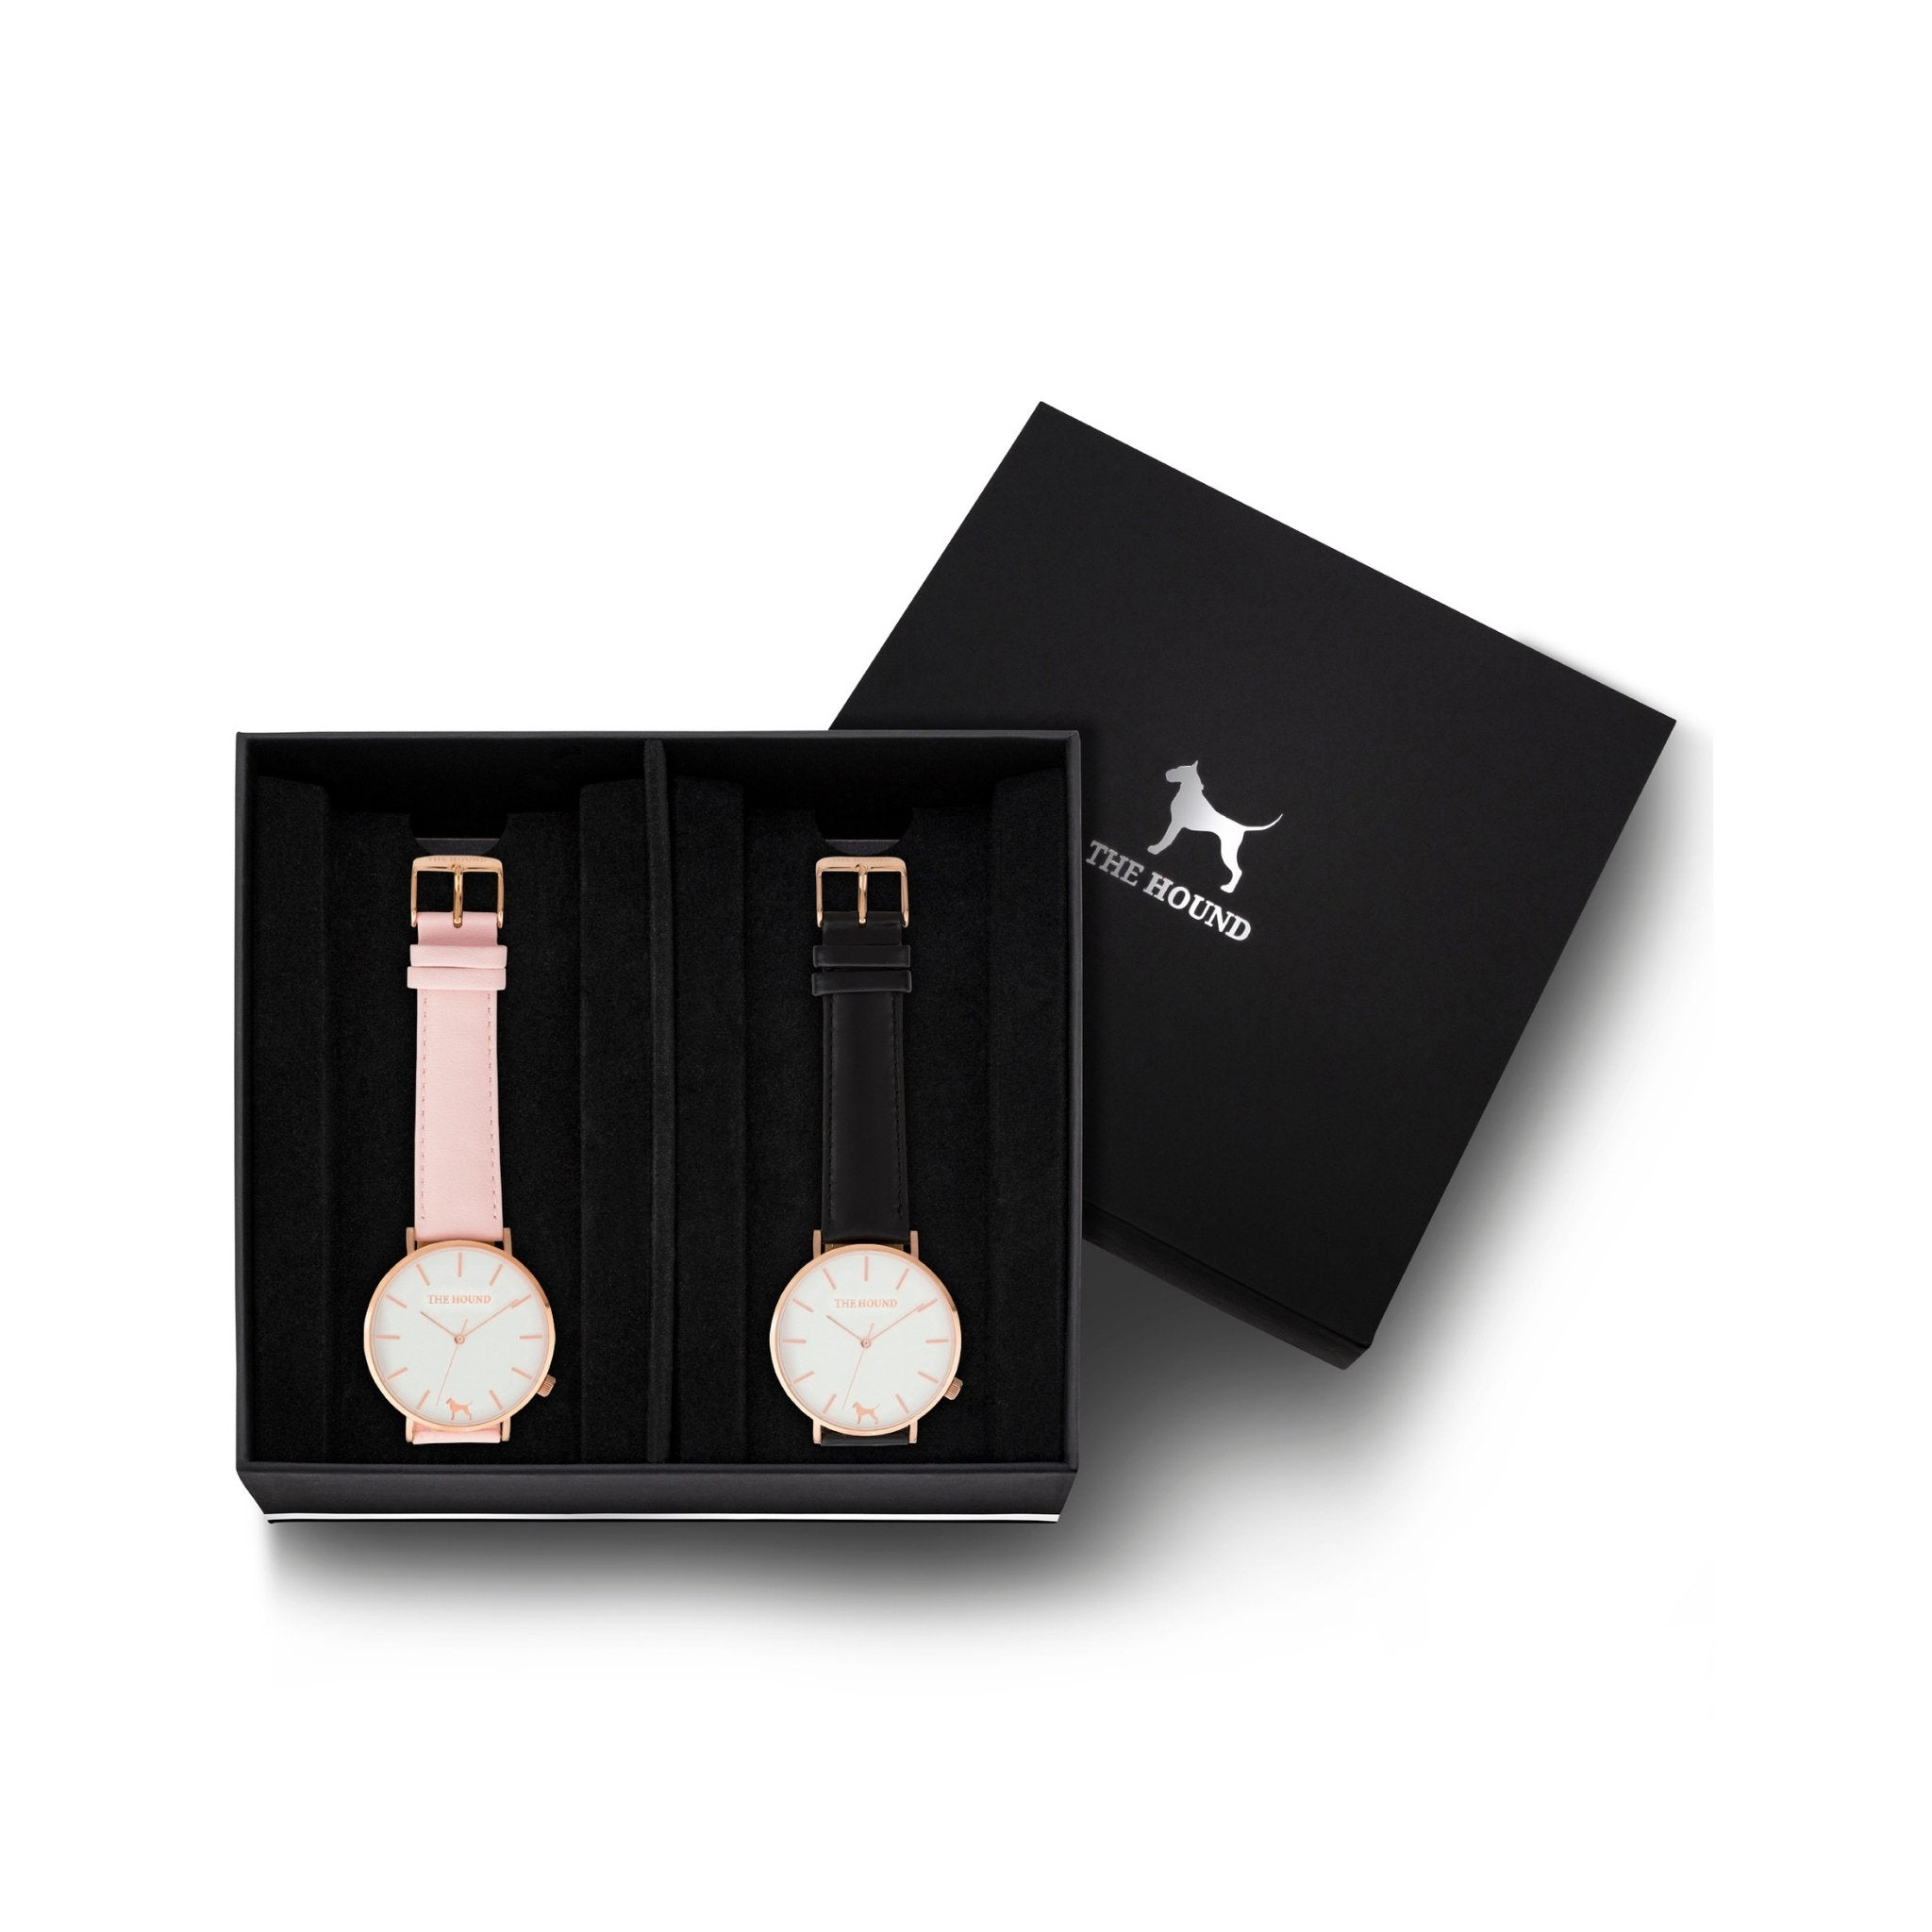 Custom gift set - Rose gold and white watch with stitched blush pink genuine leather band and a rose gold and white watch with stitched black genuine leather band